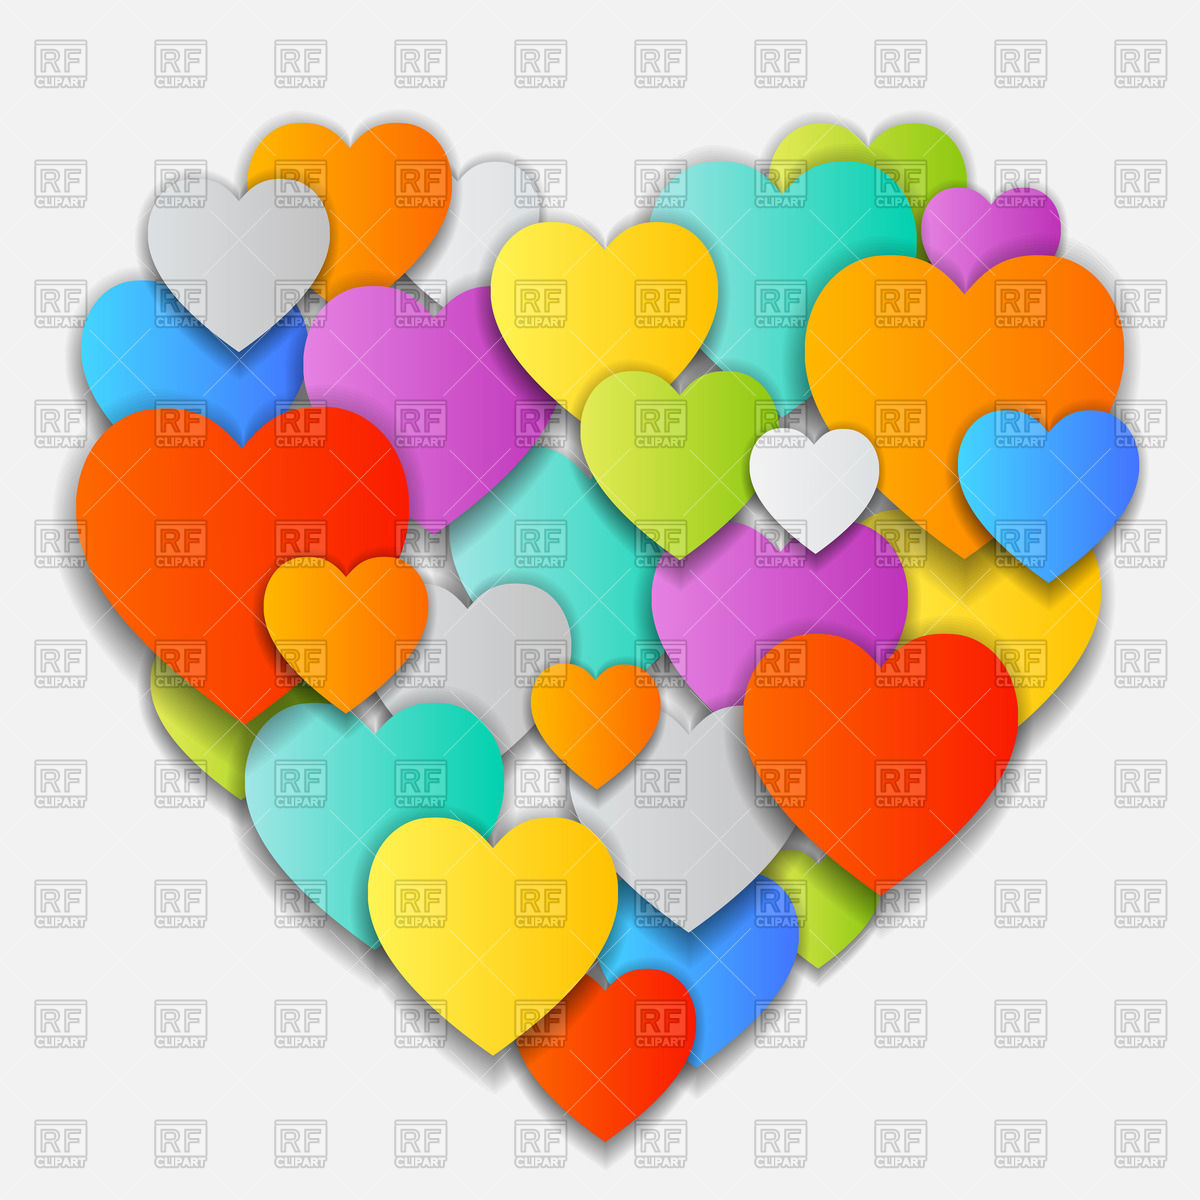 1200x1200 Cute Valentine Made Of Motley Overlapping Hearts Vector Image